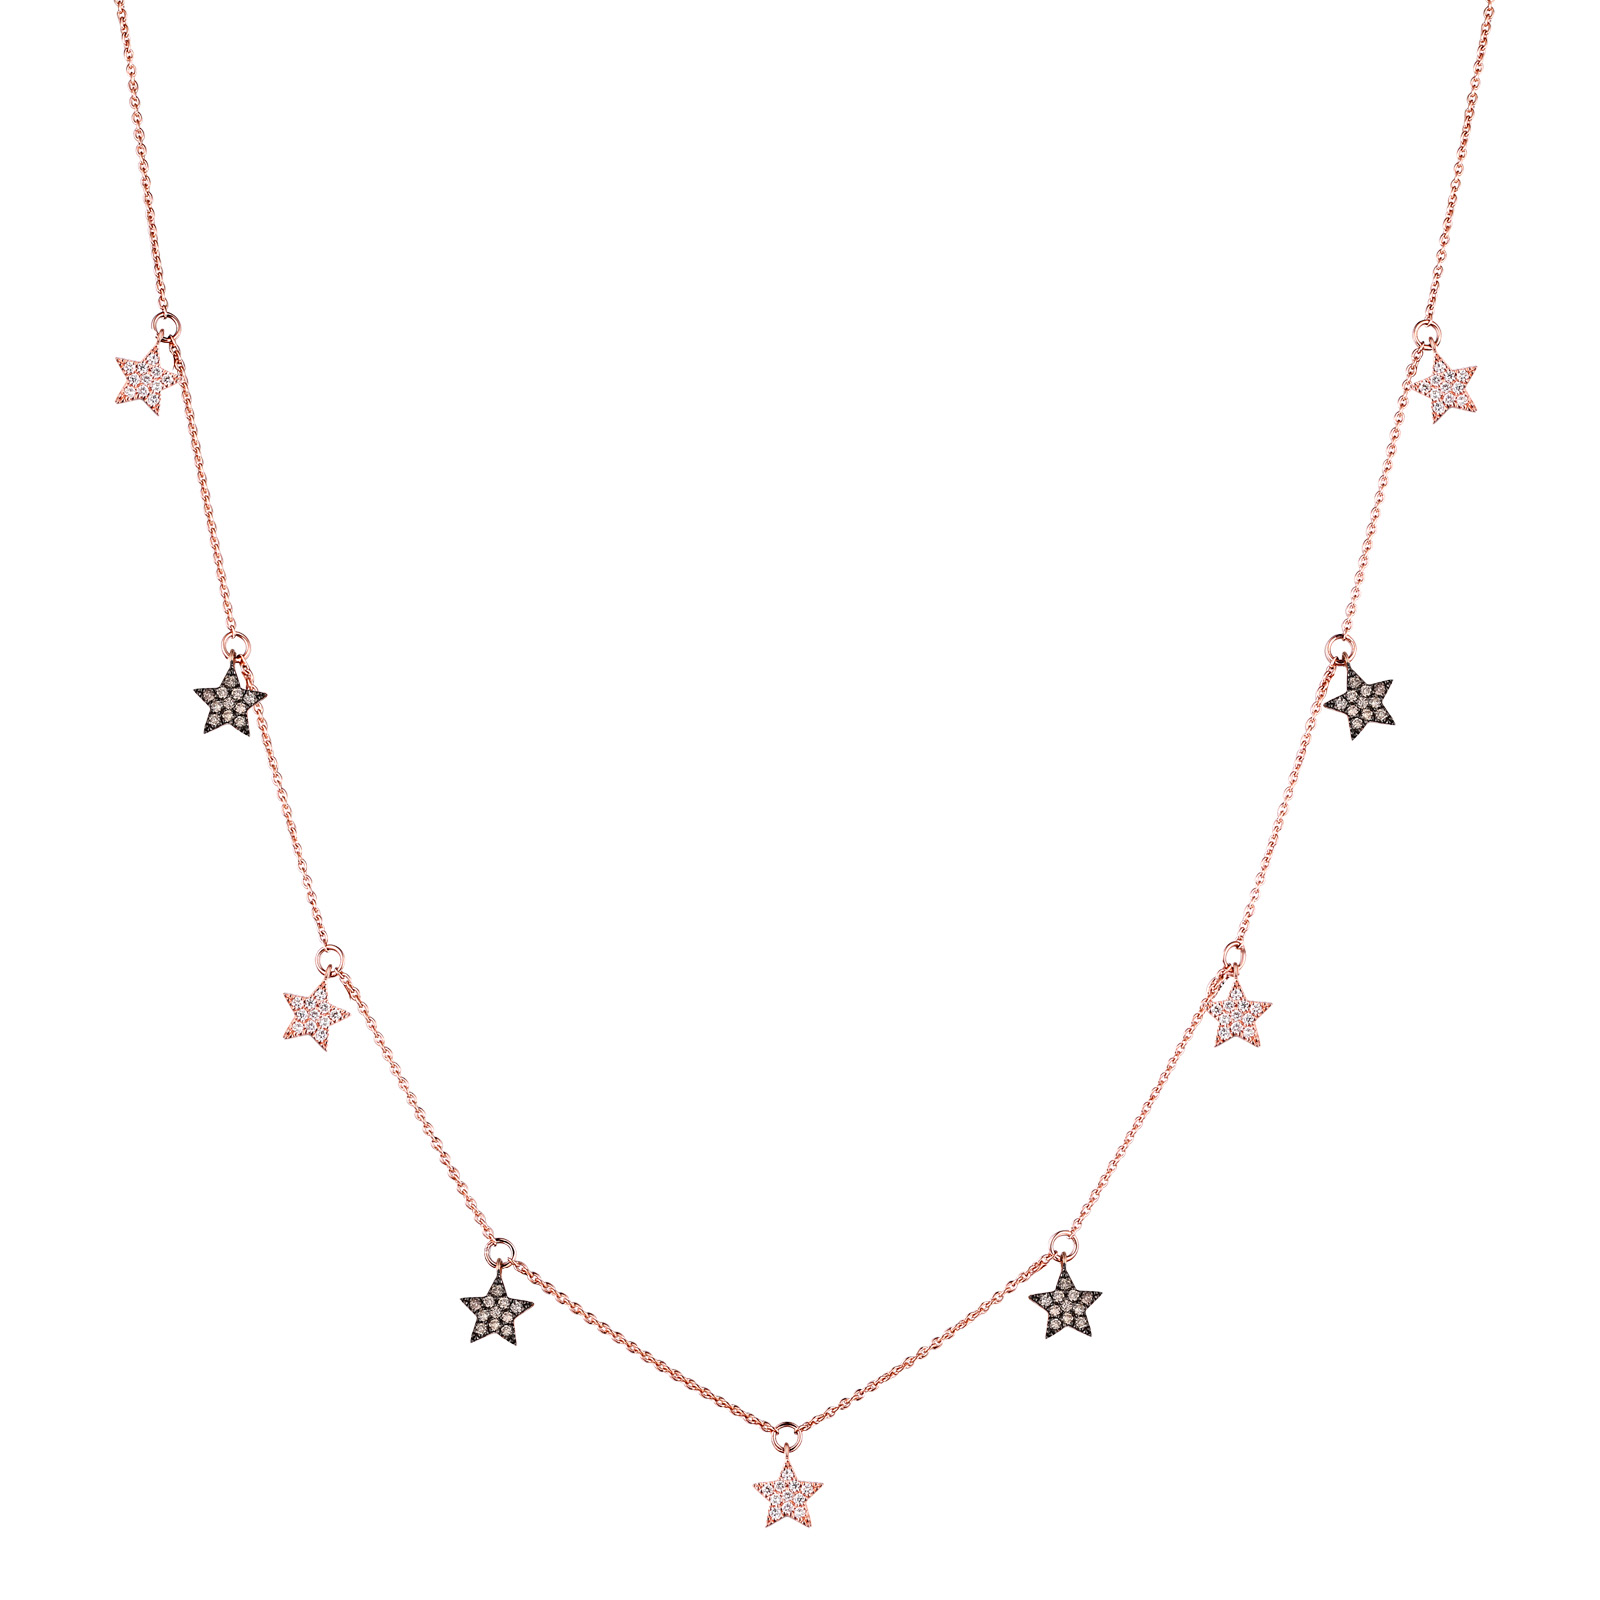 NL25533WBR- 14K Rose Gold Diamond Necklace, 0.65 TCW